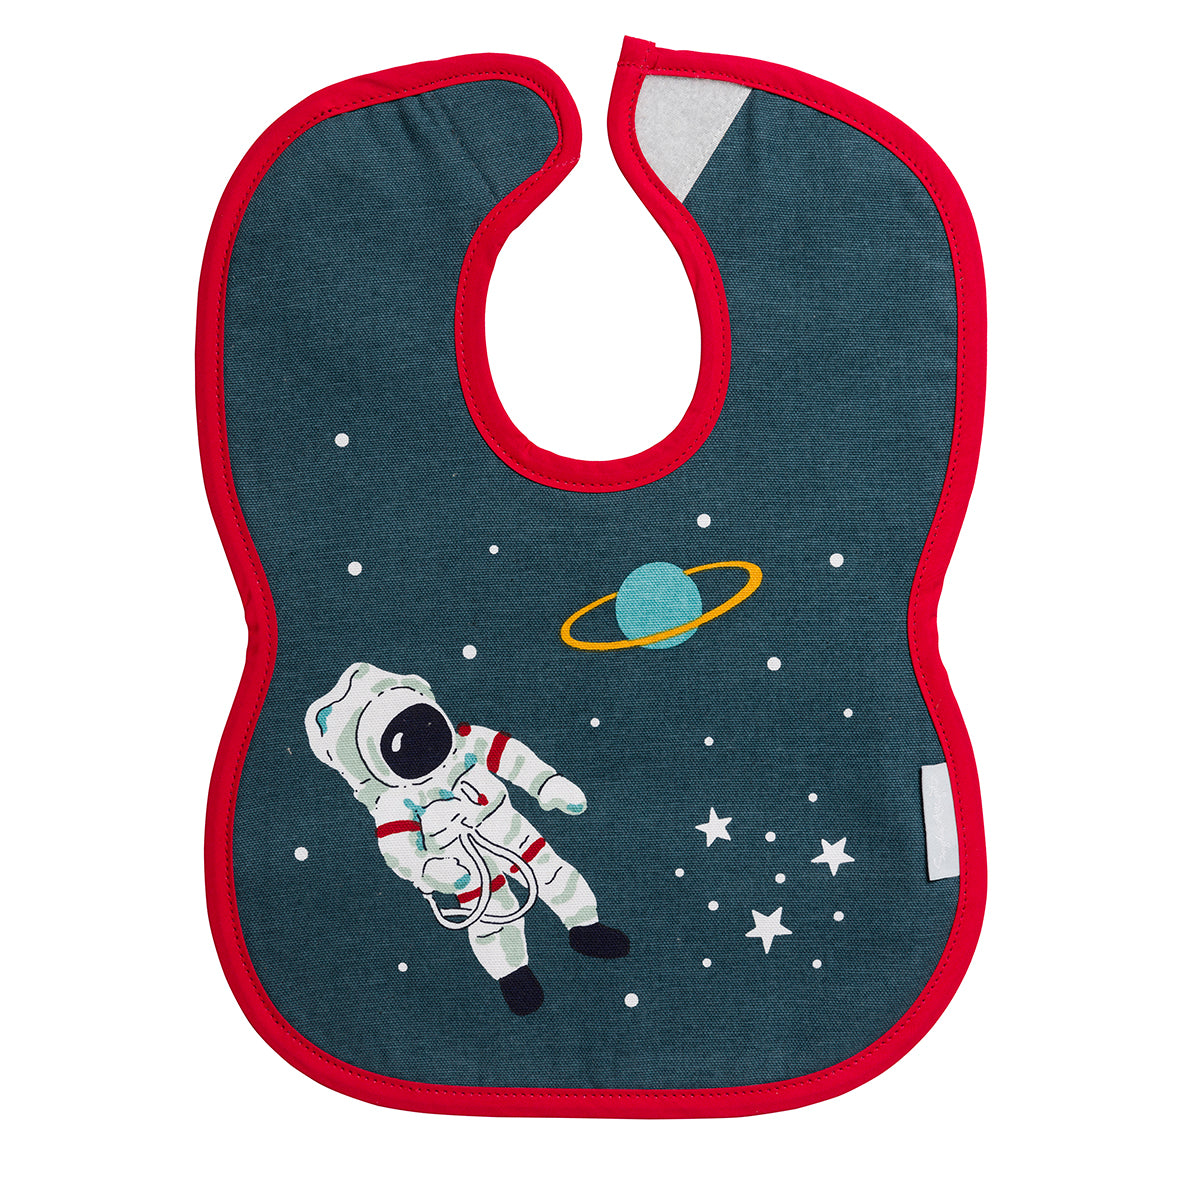 Space Bibs (Set of 2)